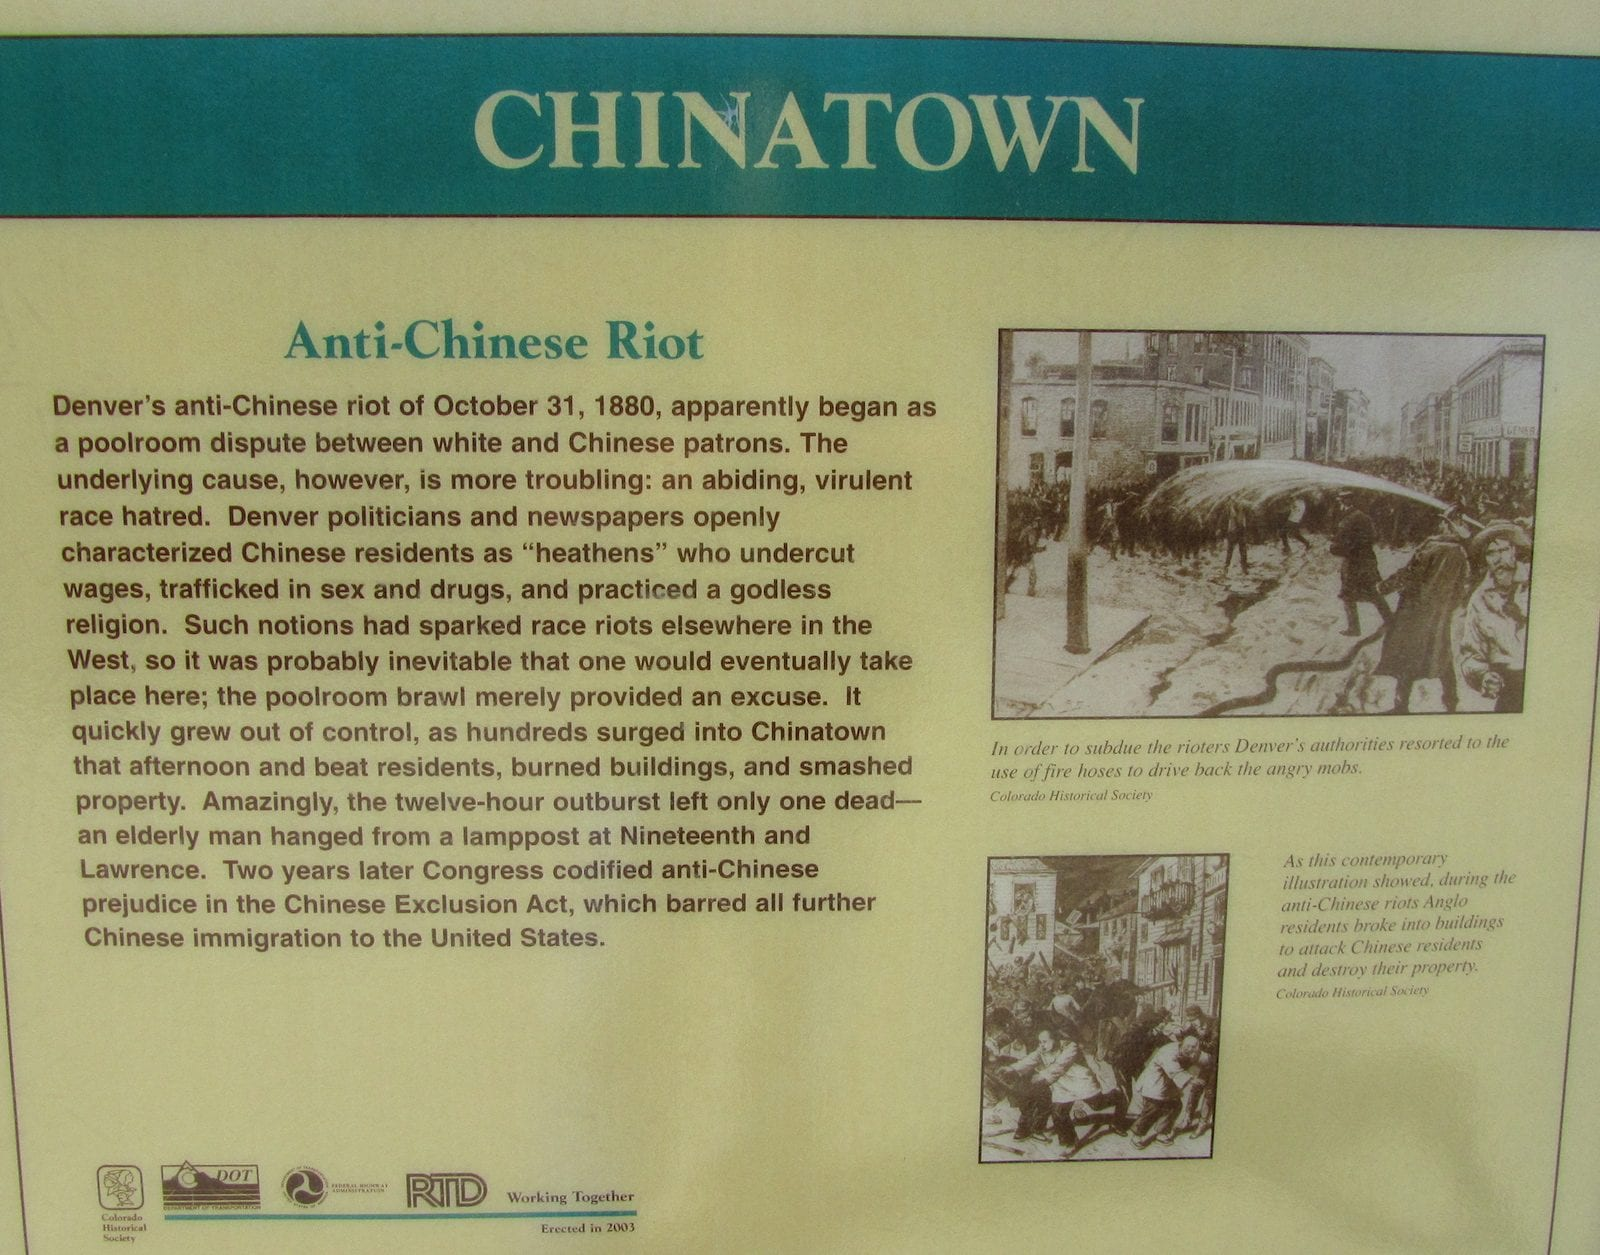 Chinatown riot, Denver, CO